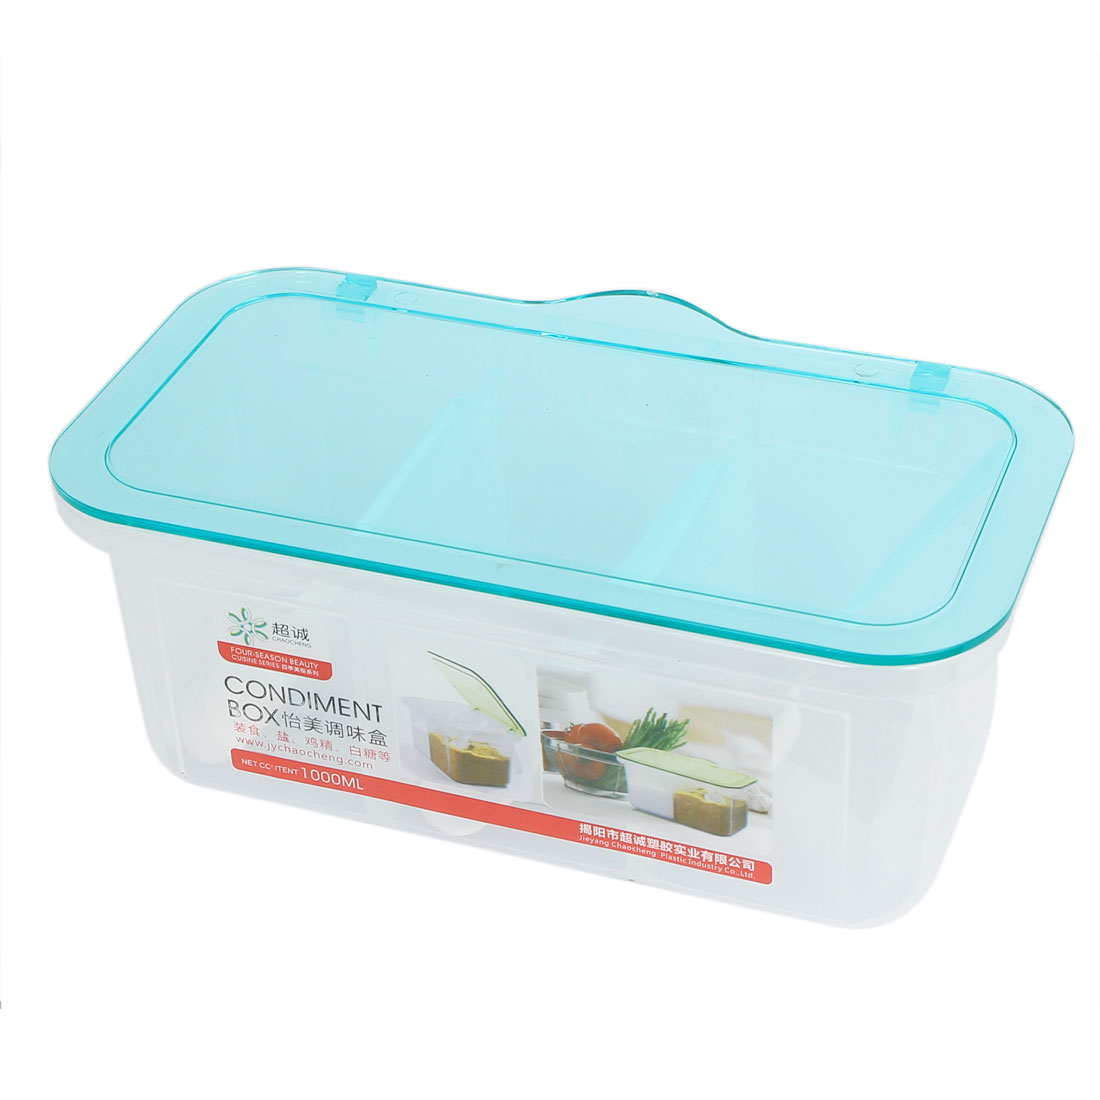 Kitchen Plastic 3 Compartments Condiment Holder Dispenser Tray Box Clear Blue